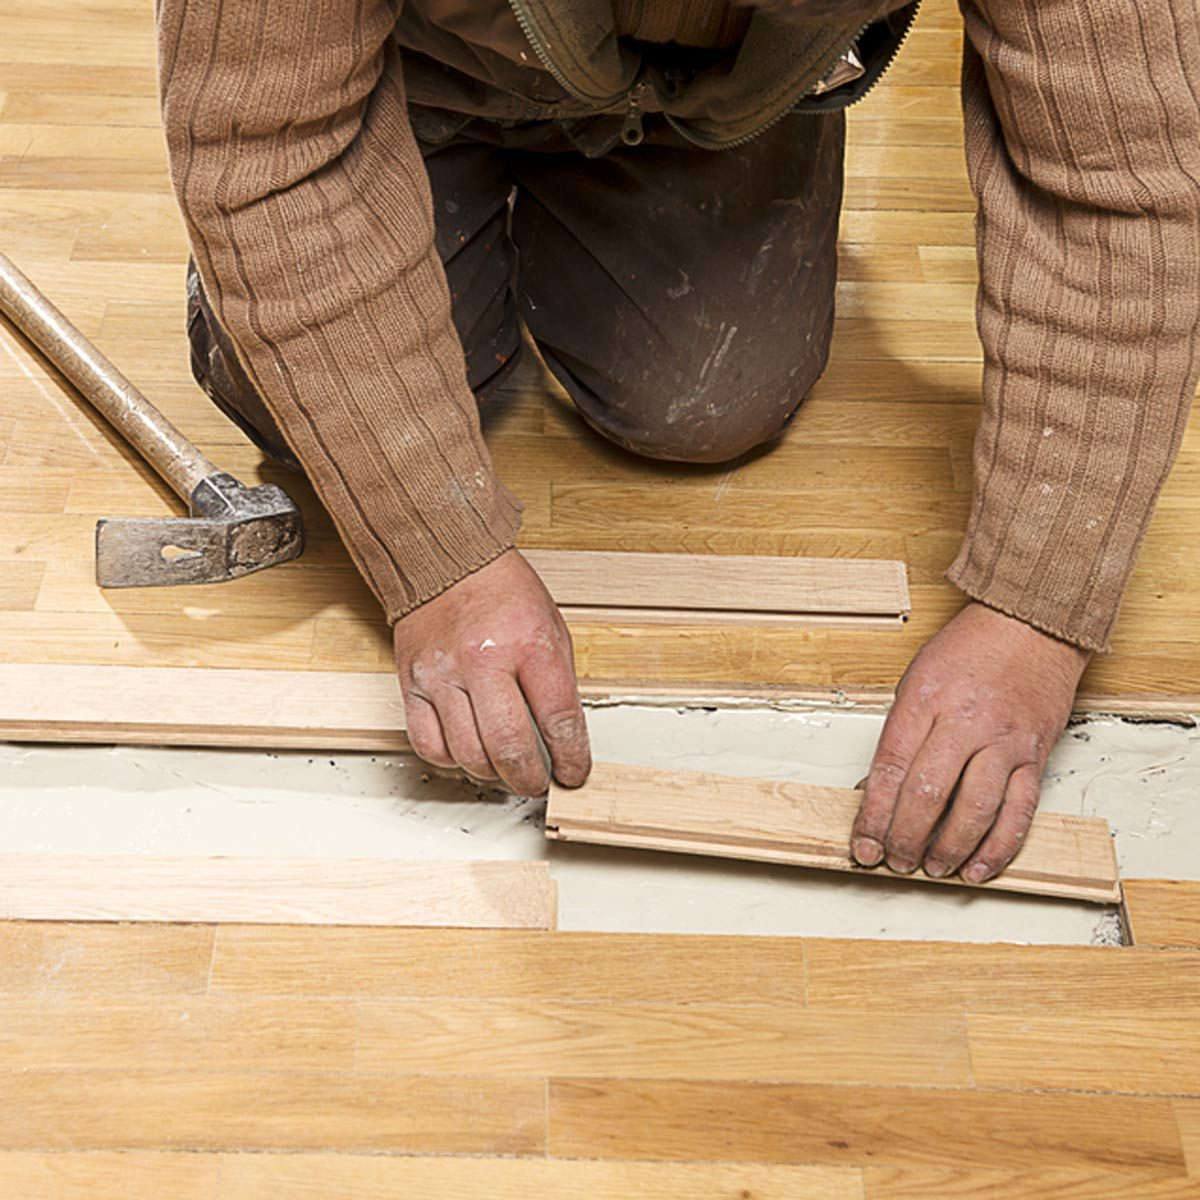 dfh10_shutterstock_290457203 replace wood floor installation